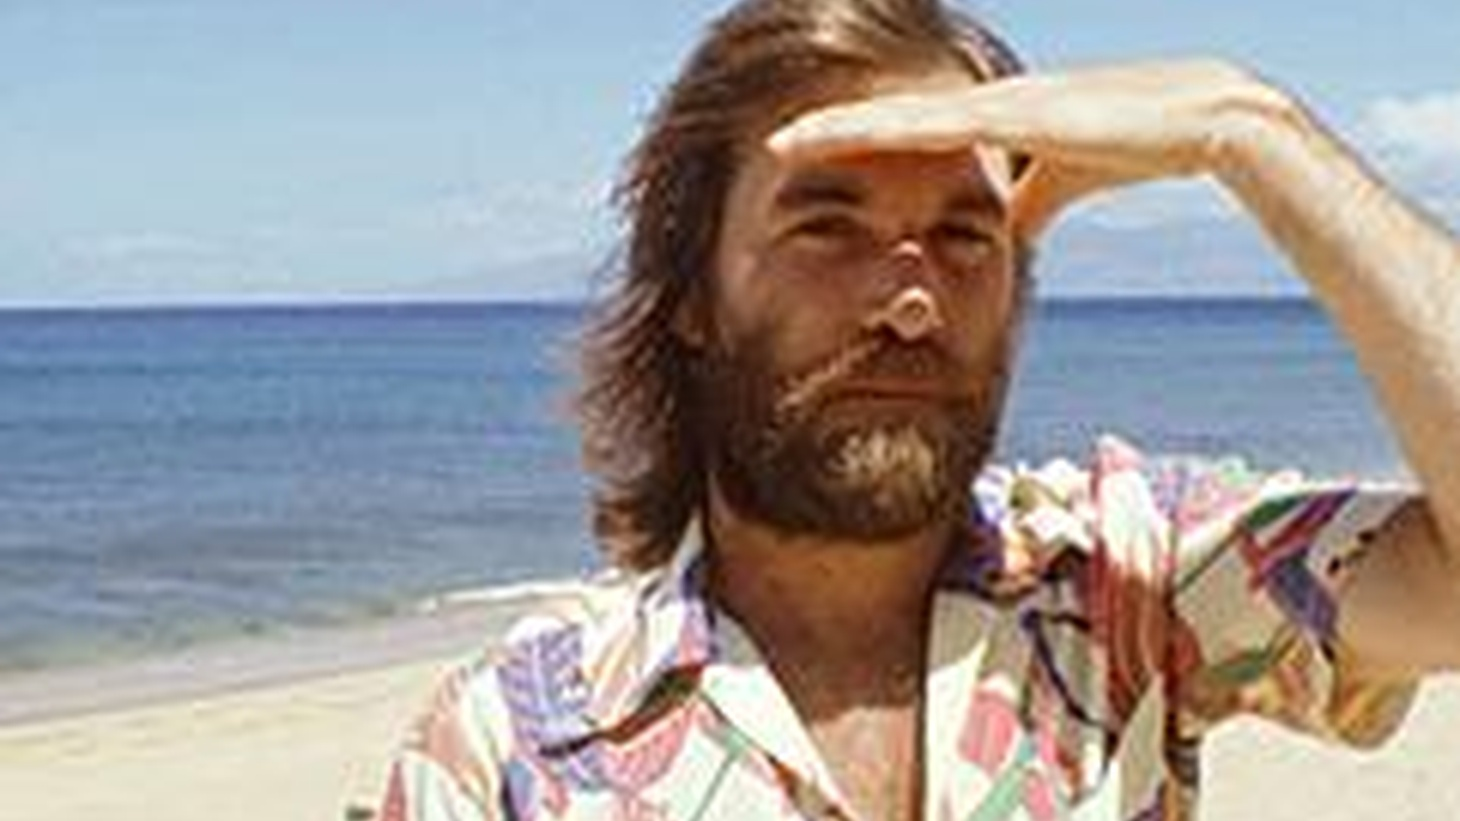 In 1977, Dennis Wilson's Pacific Ocean Blue became the first solo LP to be released by a member of the legendary Beach Boys. It still stands as one of the great cult-classic albums of the 1970's and a crucial puzzle-piece in the Wilson family's long musical history. Voices of family, friends and colleagues help complete the picture of a complex artist.